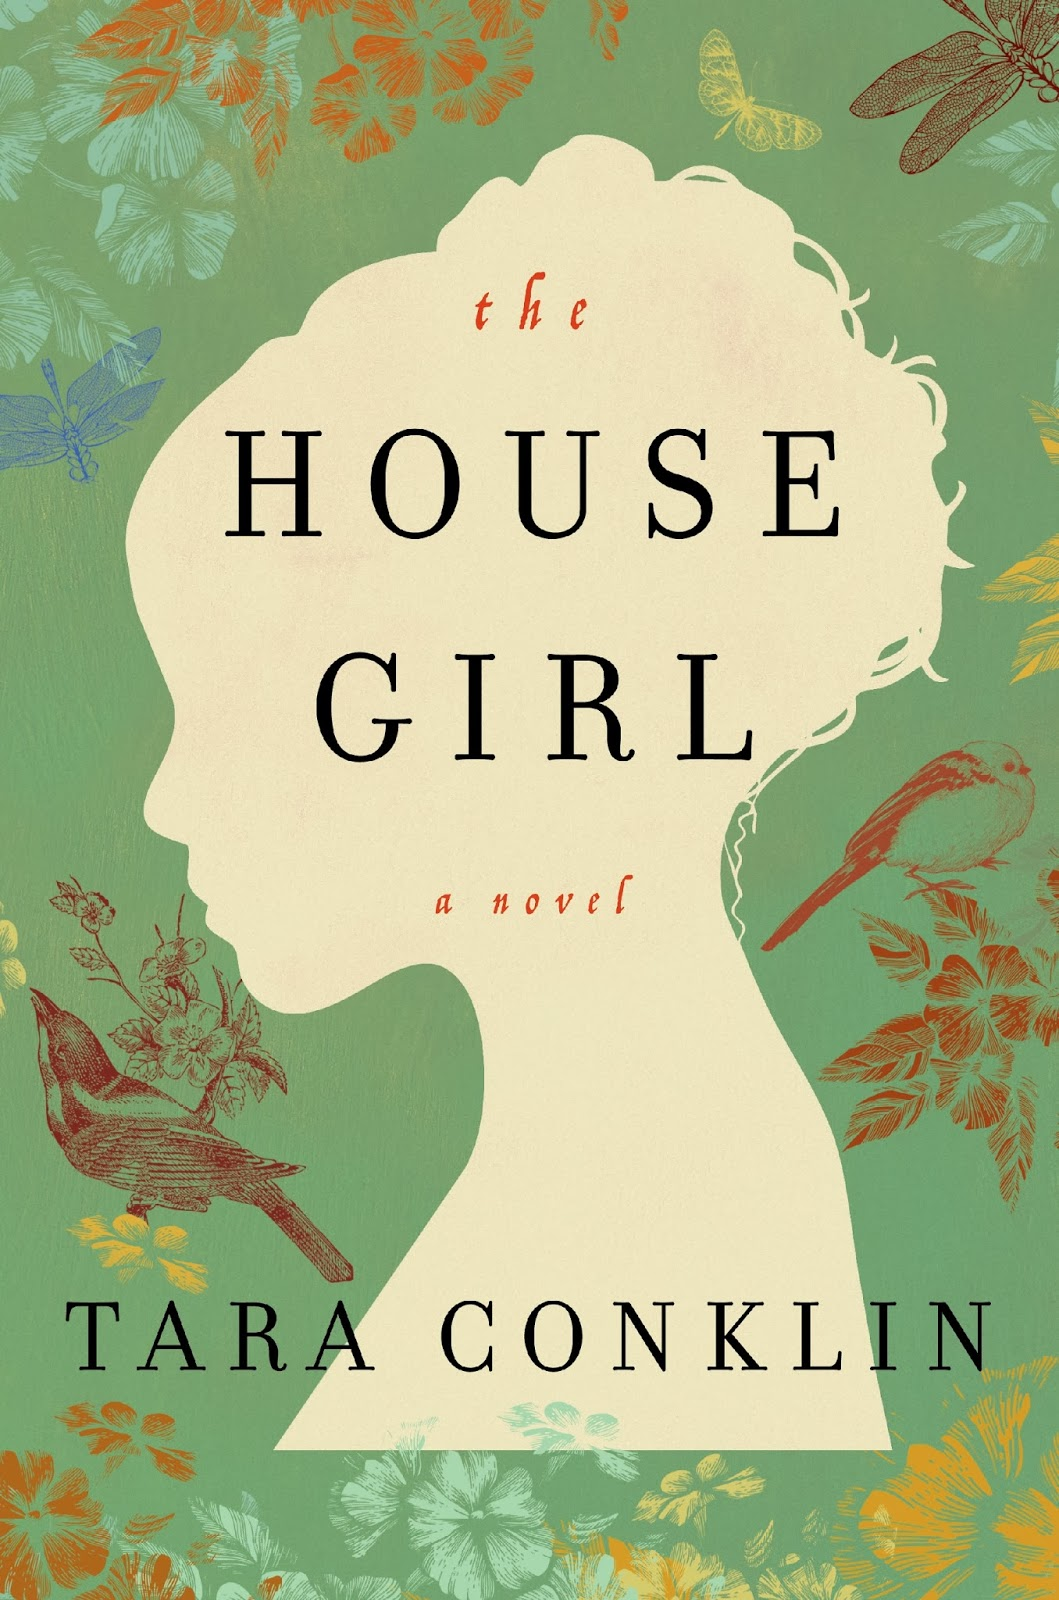 http://discover.halifaxpubliclibraries.ca/?q=title:%22house%20girl%22tara